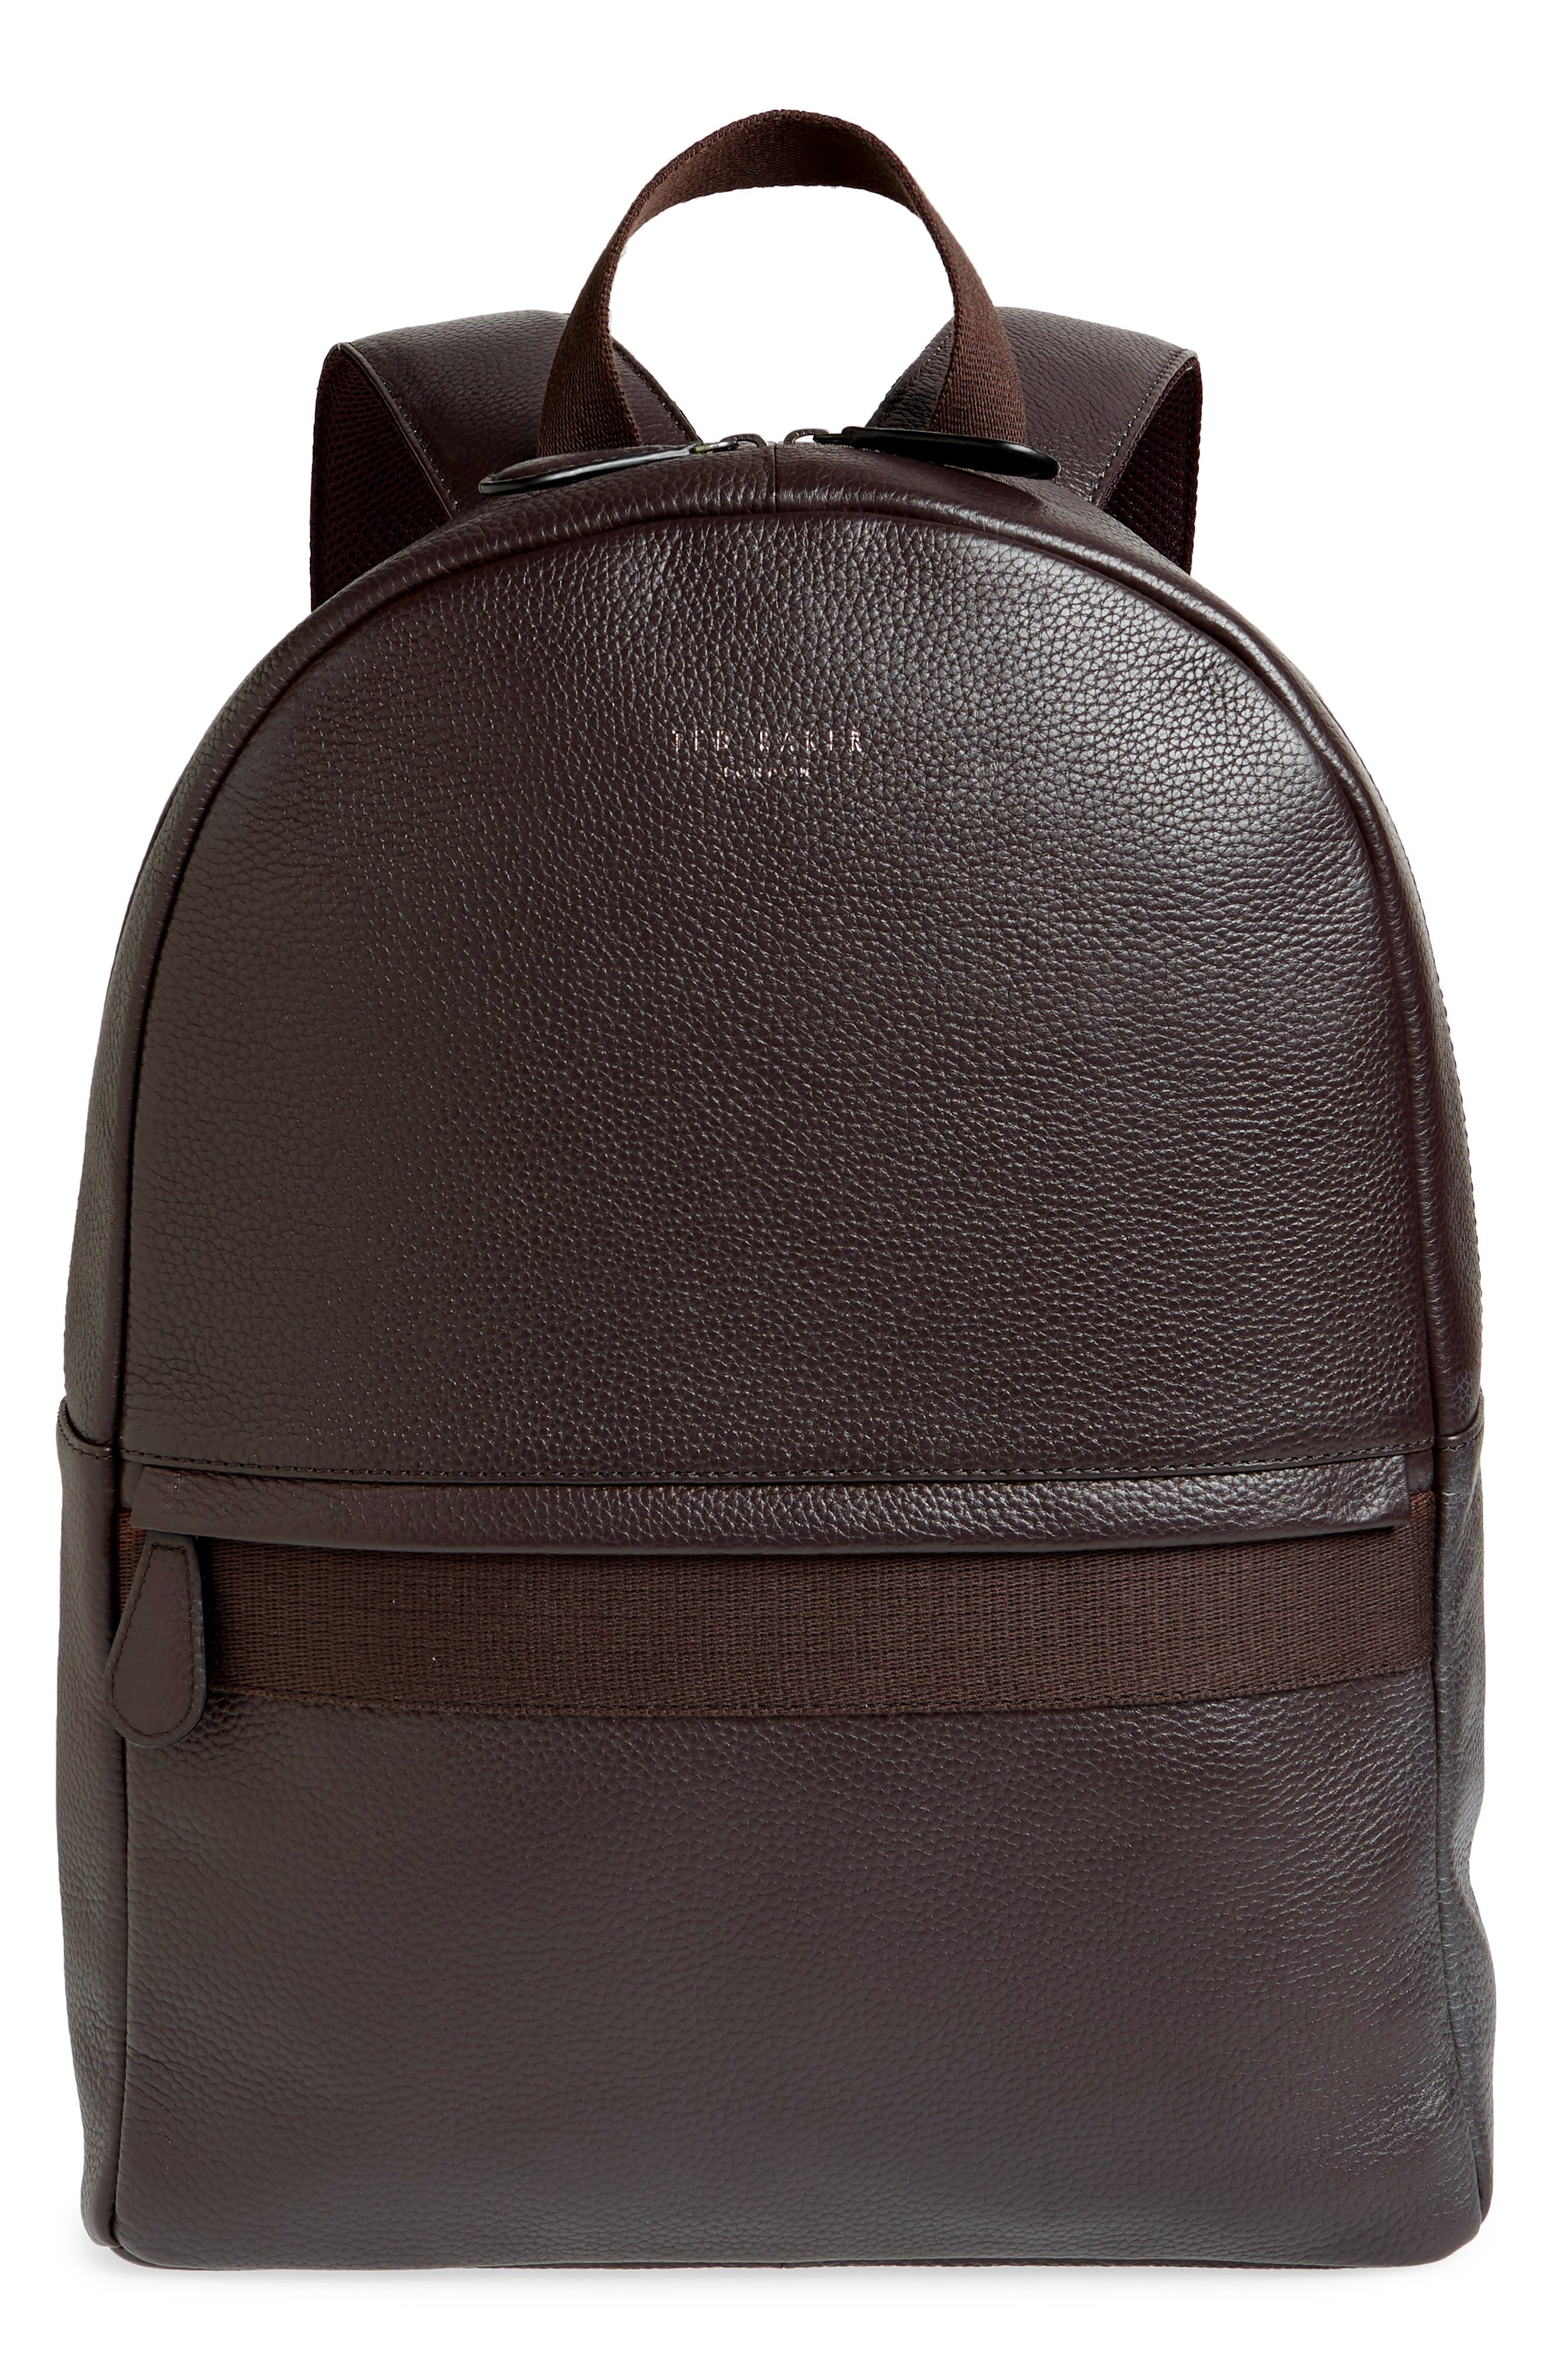 Leather Backpack,                         Main,                         color, CHOCOLATE